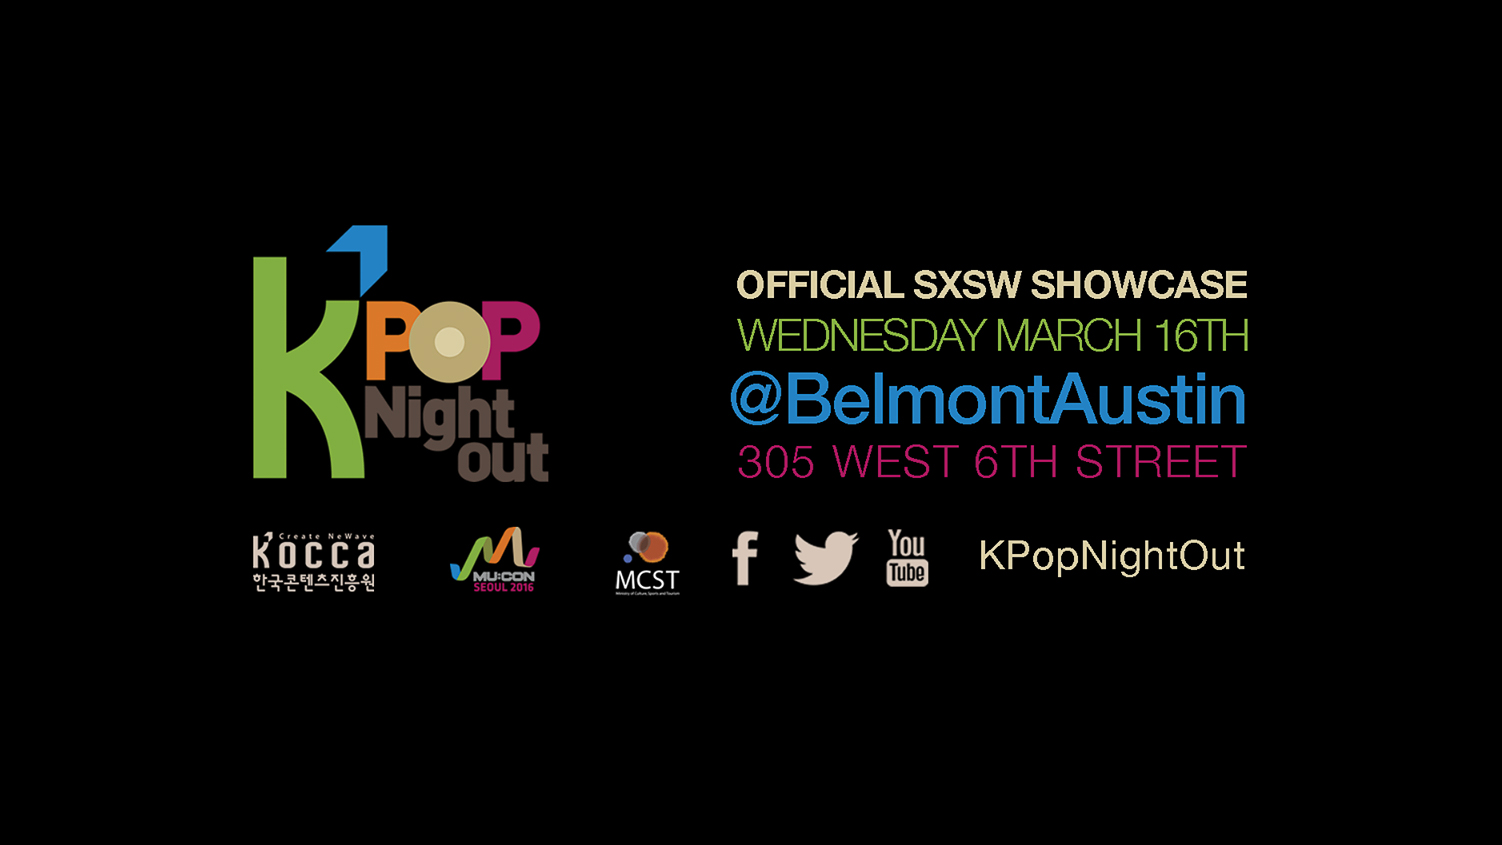 K-Pop Night Out at SXSW returns for 2016 with exciting lineup and new venue